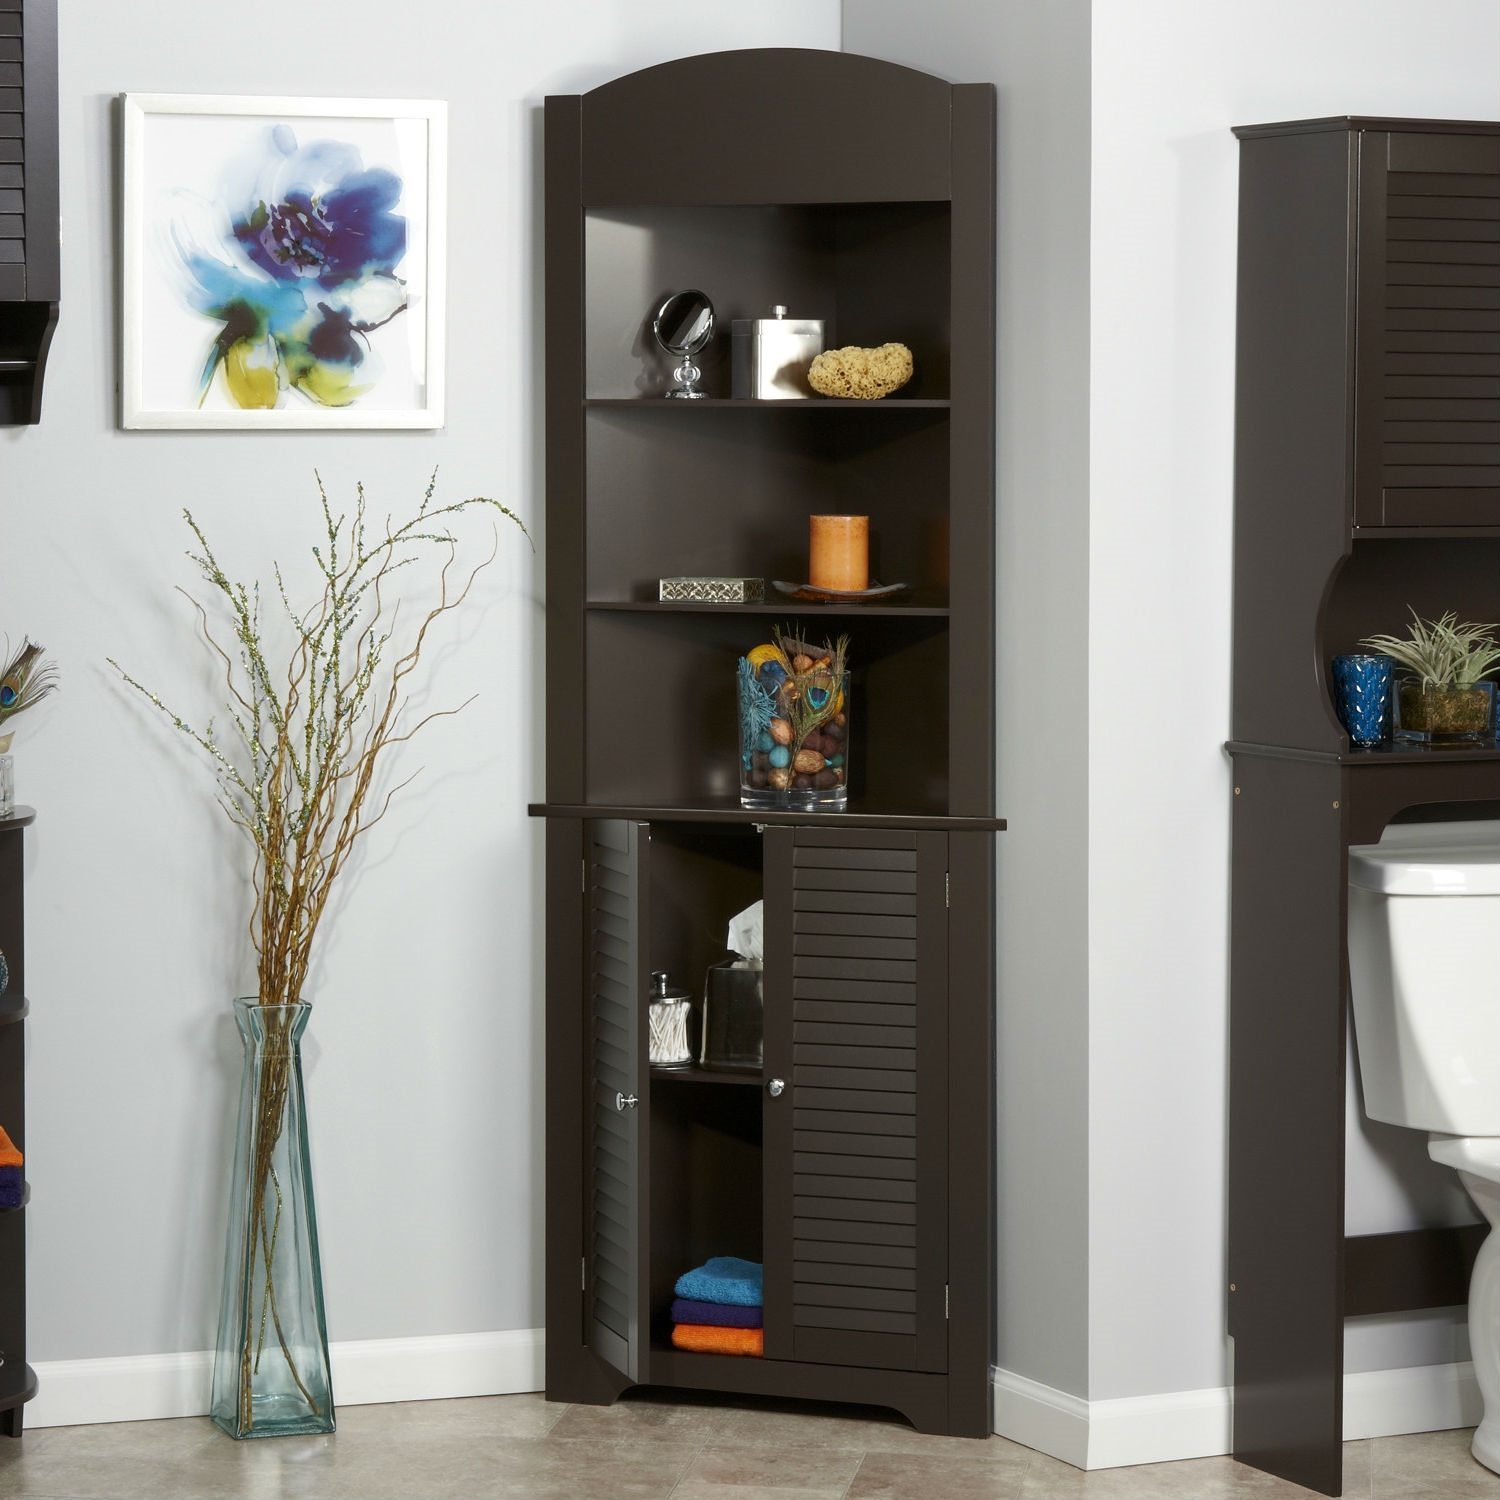 Towel Storage Cabinet Espresso Bathroom Linen Tower Corner Towel ...